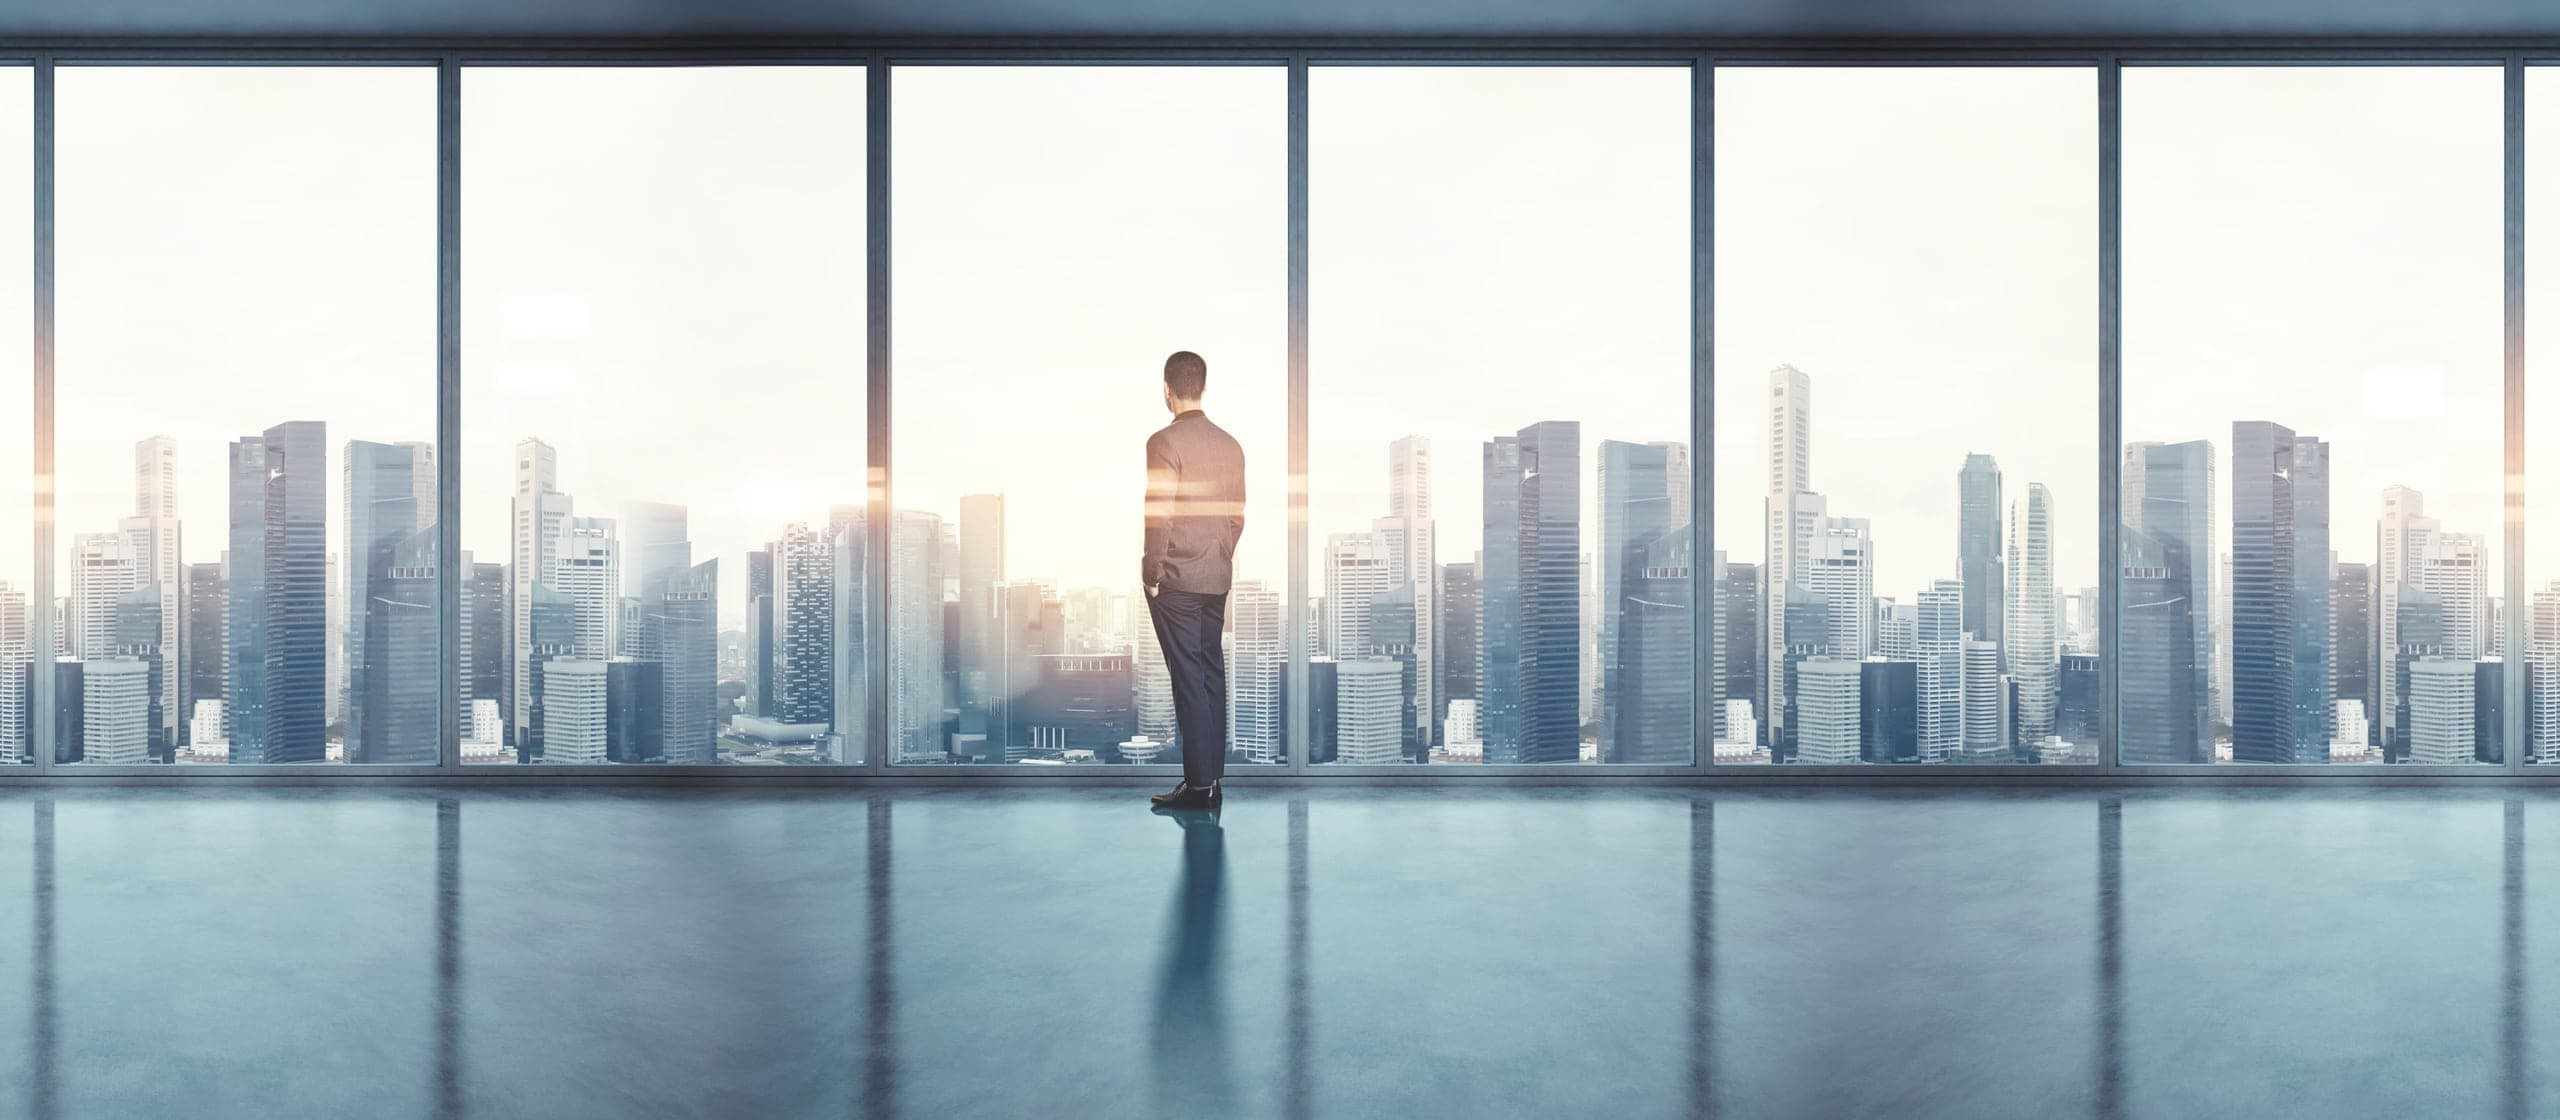 Business man gazing out of a window into a large city skyline.